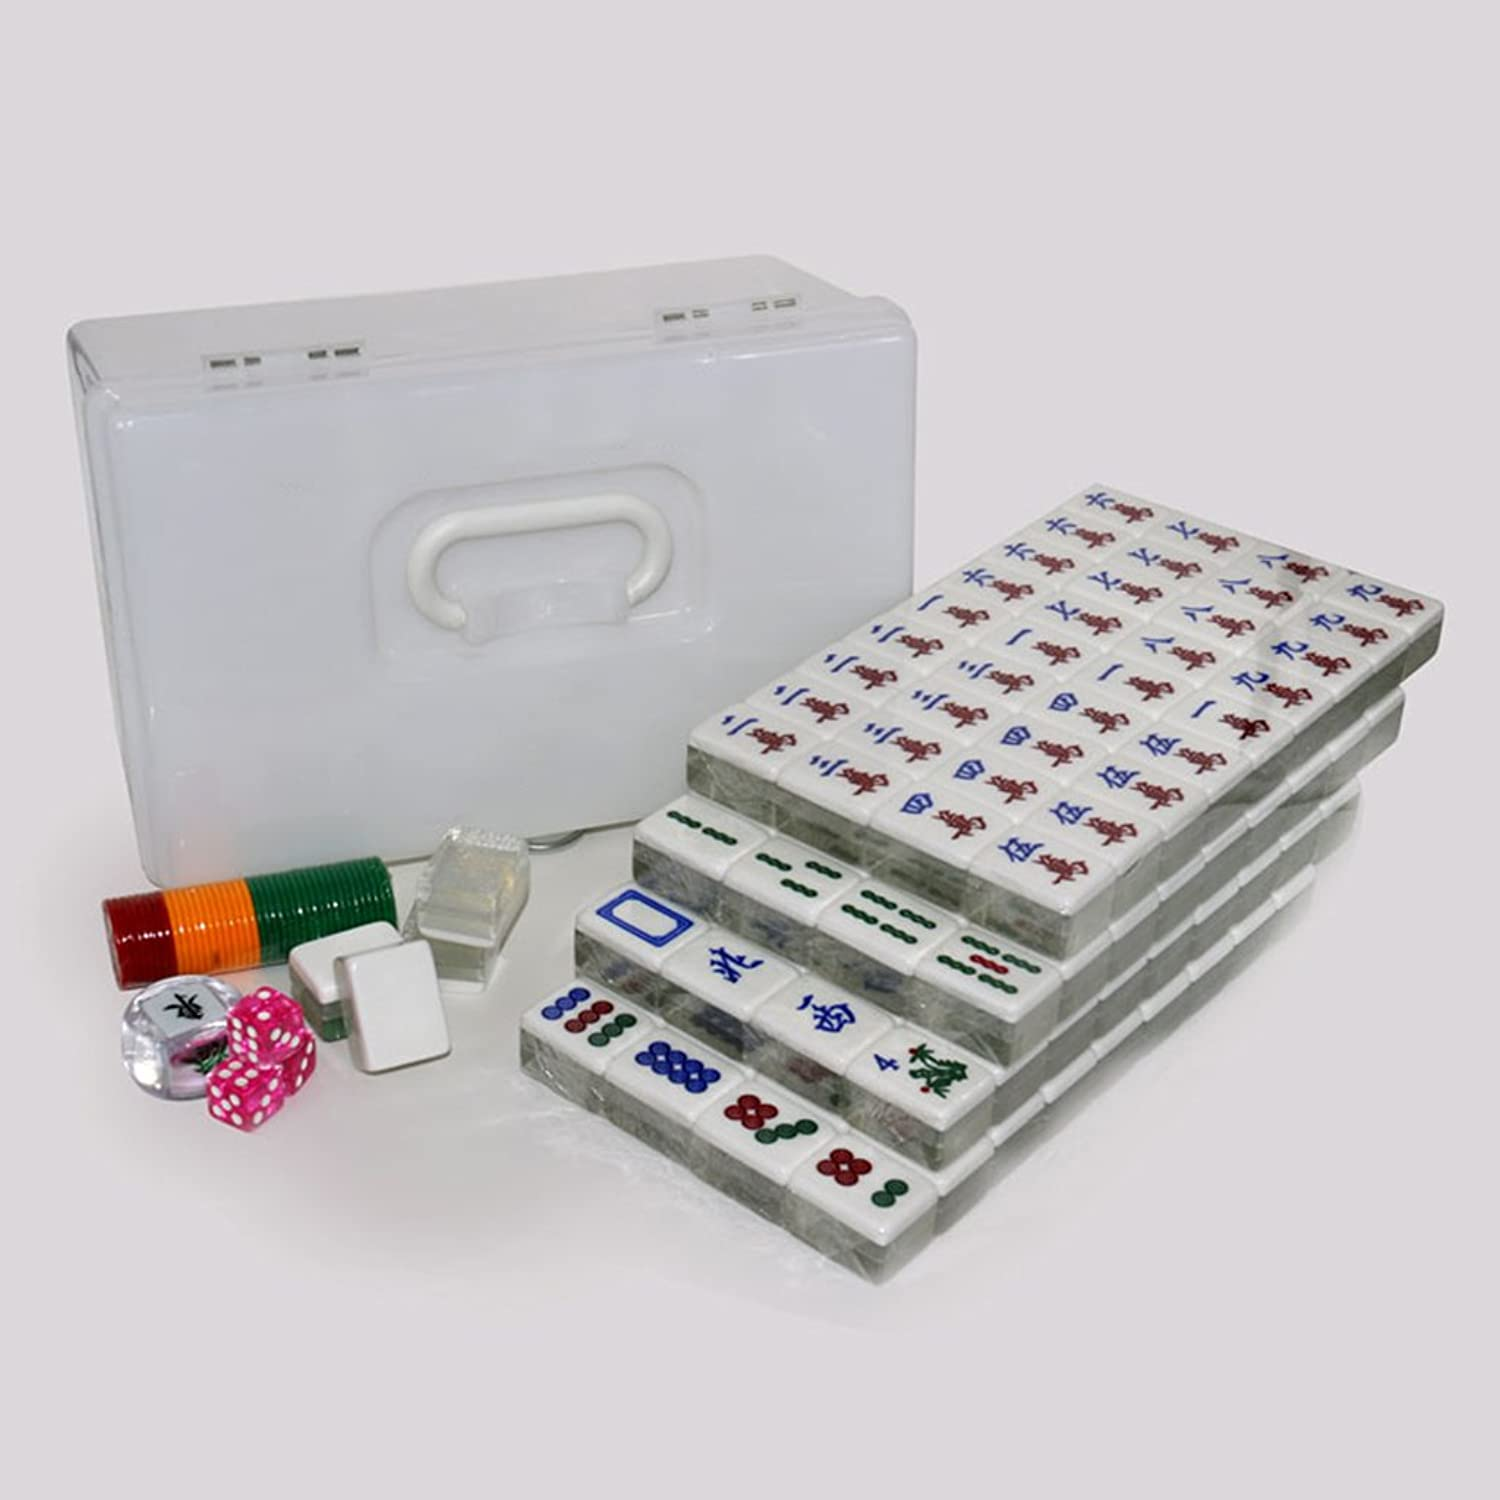 LI JING SHOP - Home Acrylic Two colors crystal gold wire Mahjong, 4.0CM large Hand rubbing Mahjong card size  4.0  3.1  2.1CM ( color   Silver , Size   4.03.12.1CM )